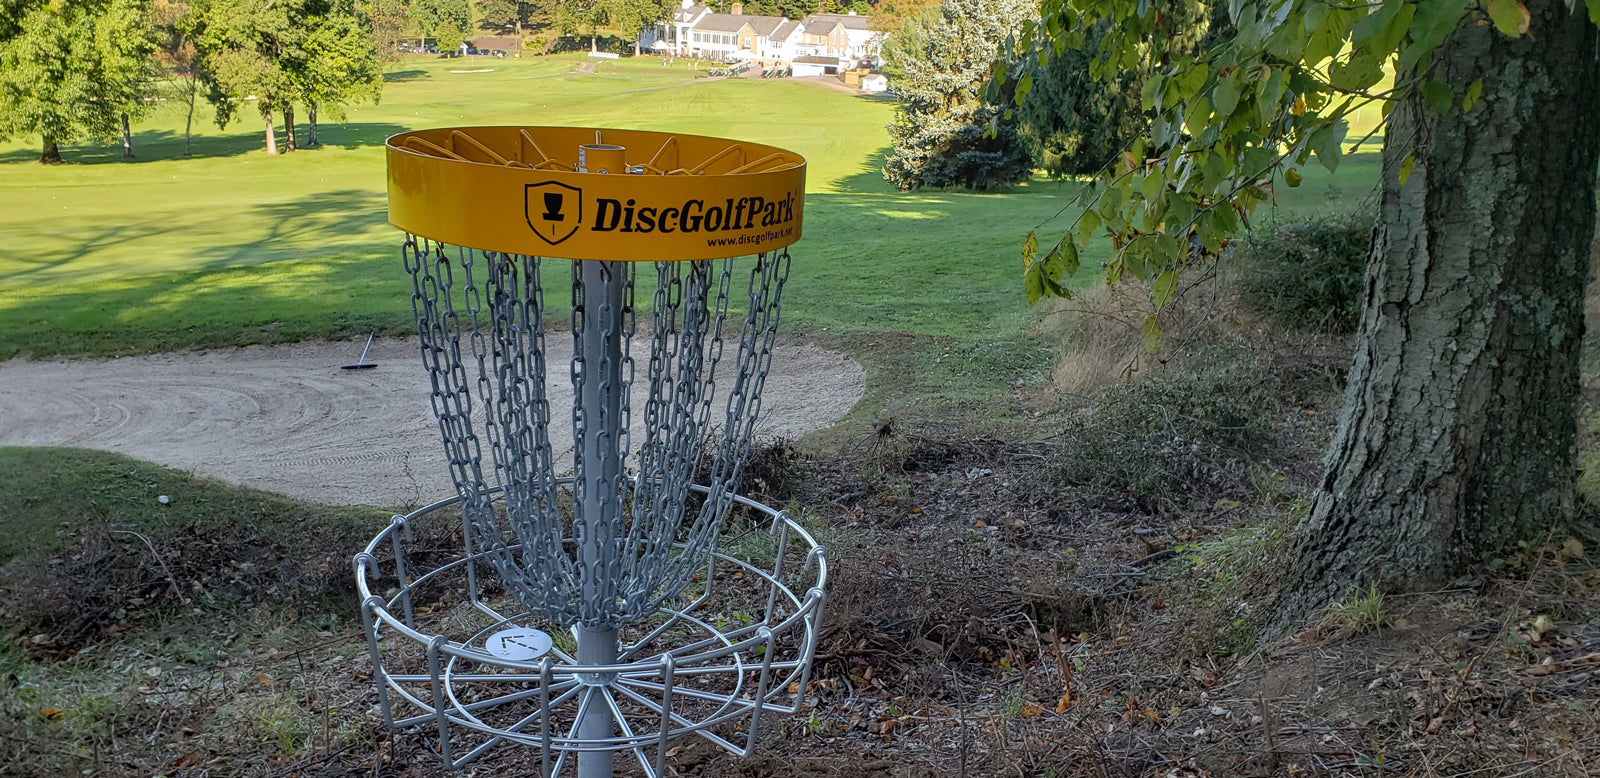 Steel Club houses complete Championship level DiscGolfPark®